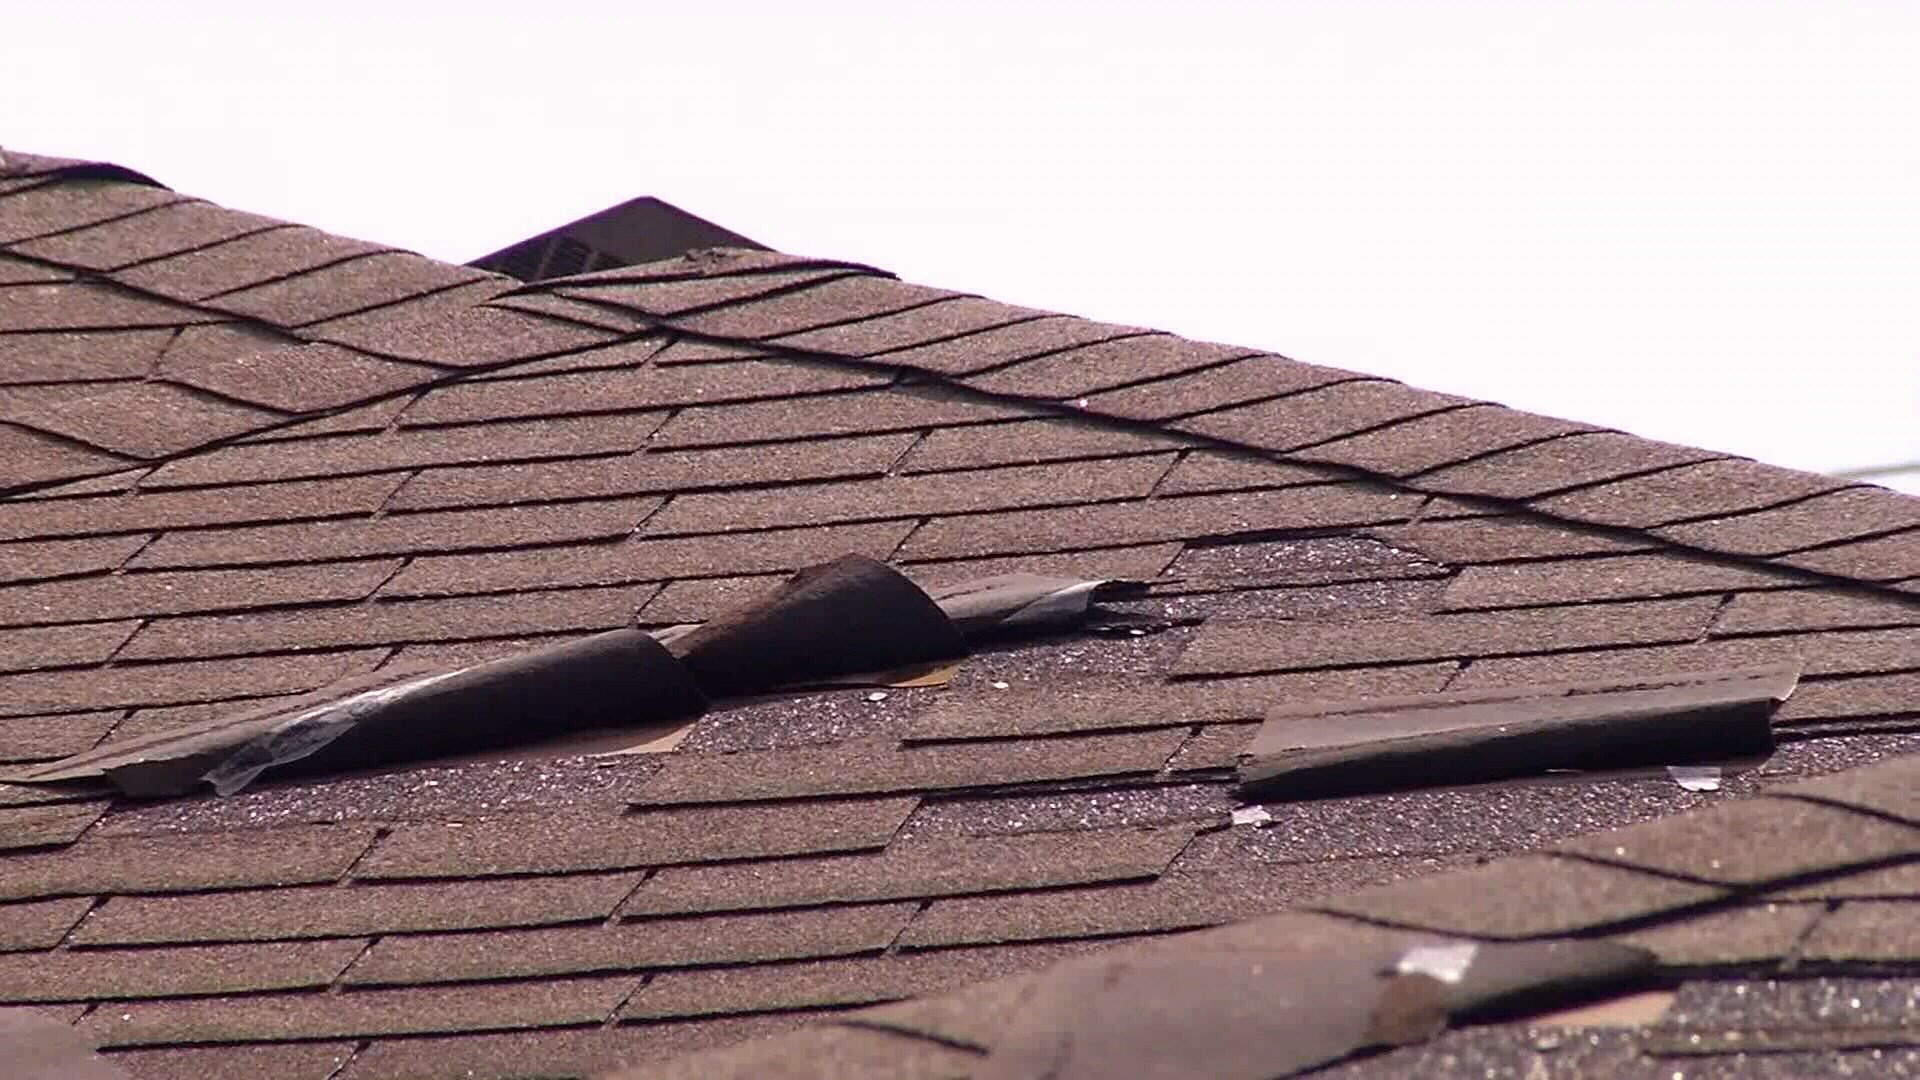 Peeled roof shingles are just some of the damage that concerns homeowners in two new Southside subdivisions. (KRIS 6 News)